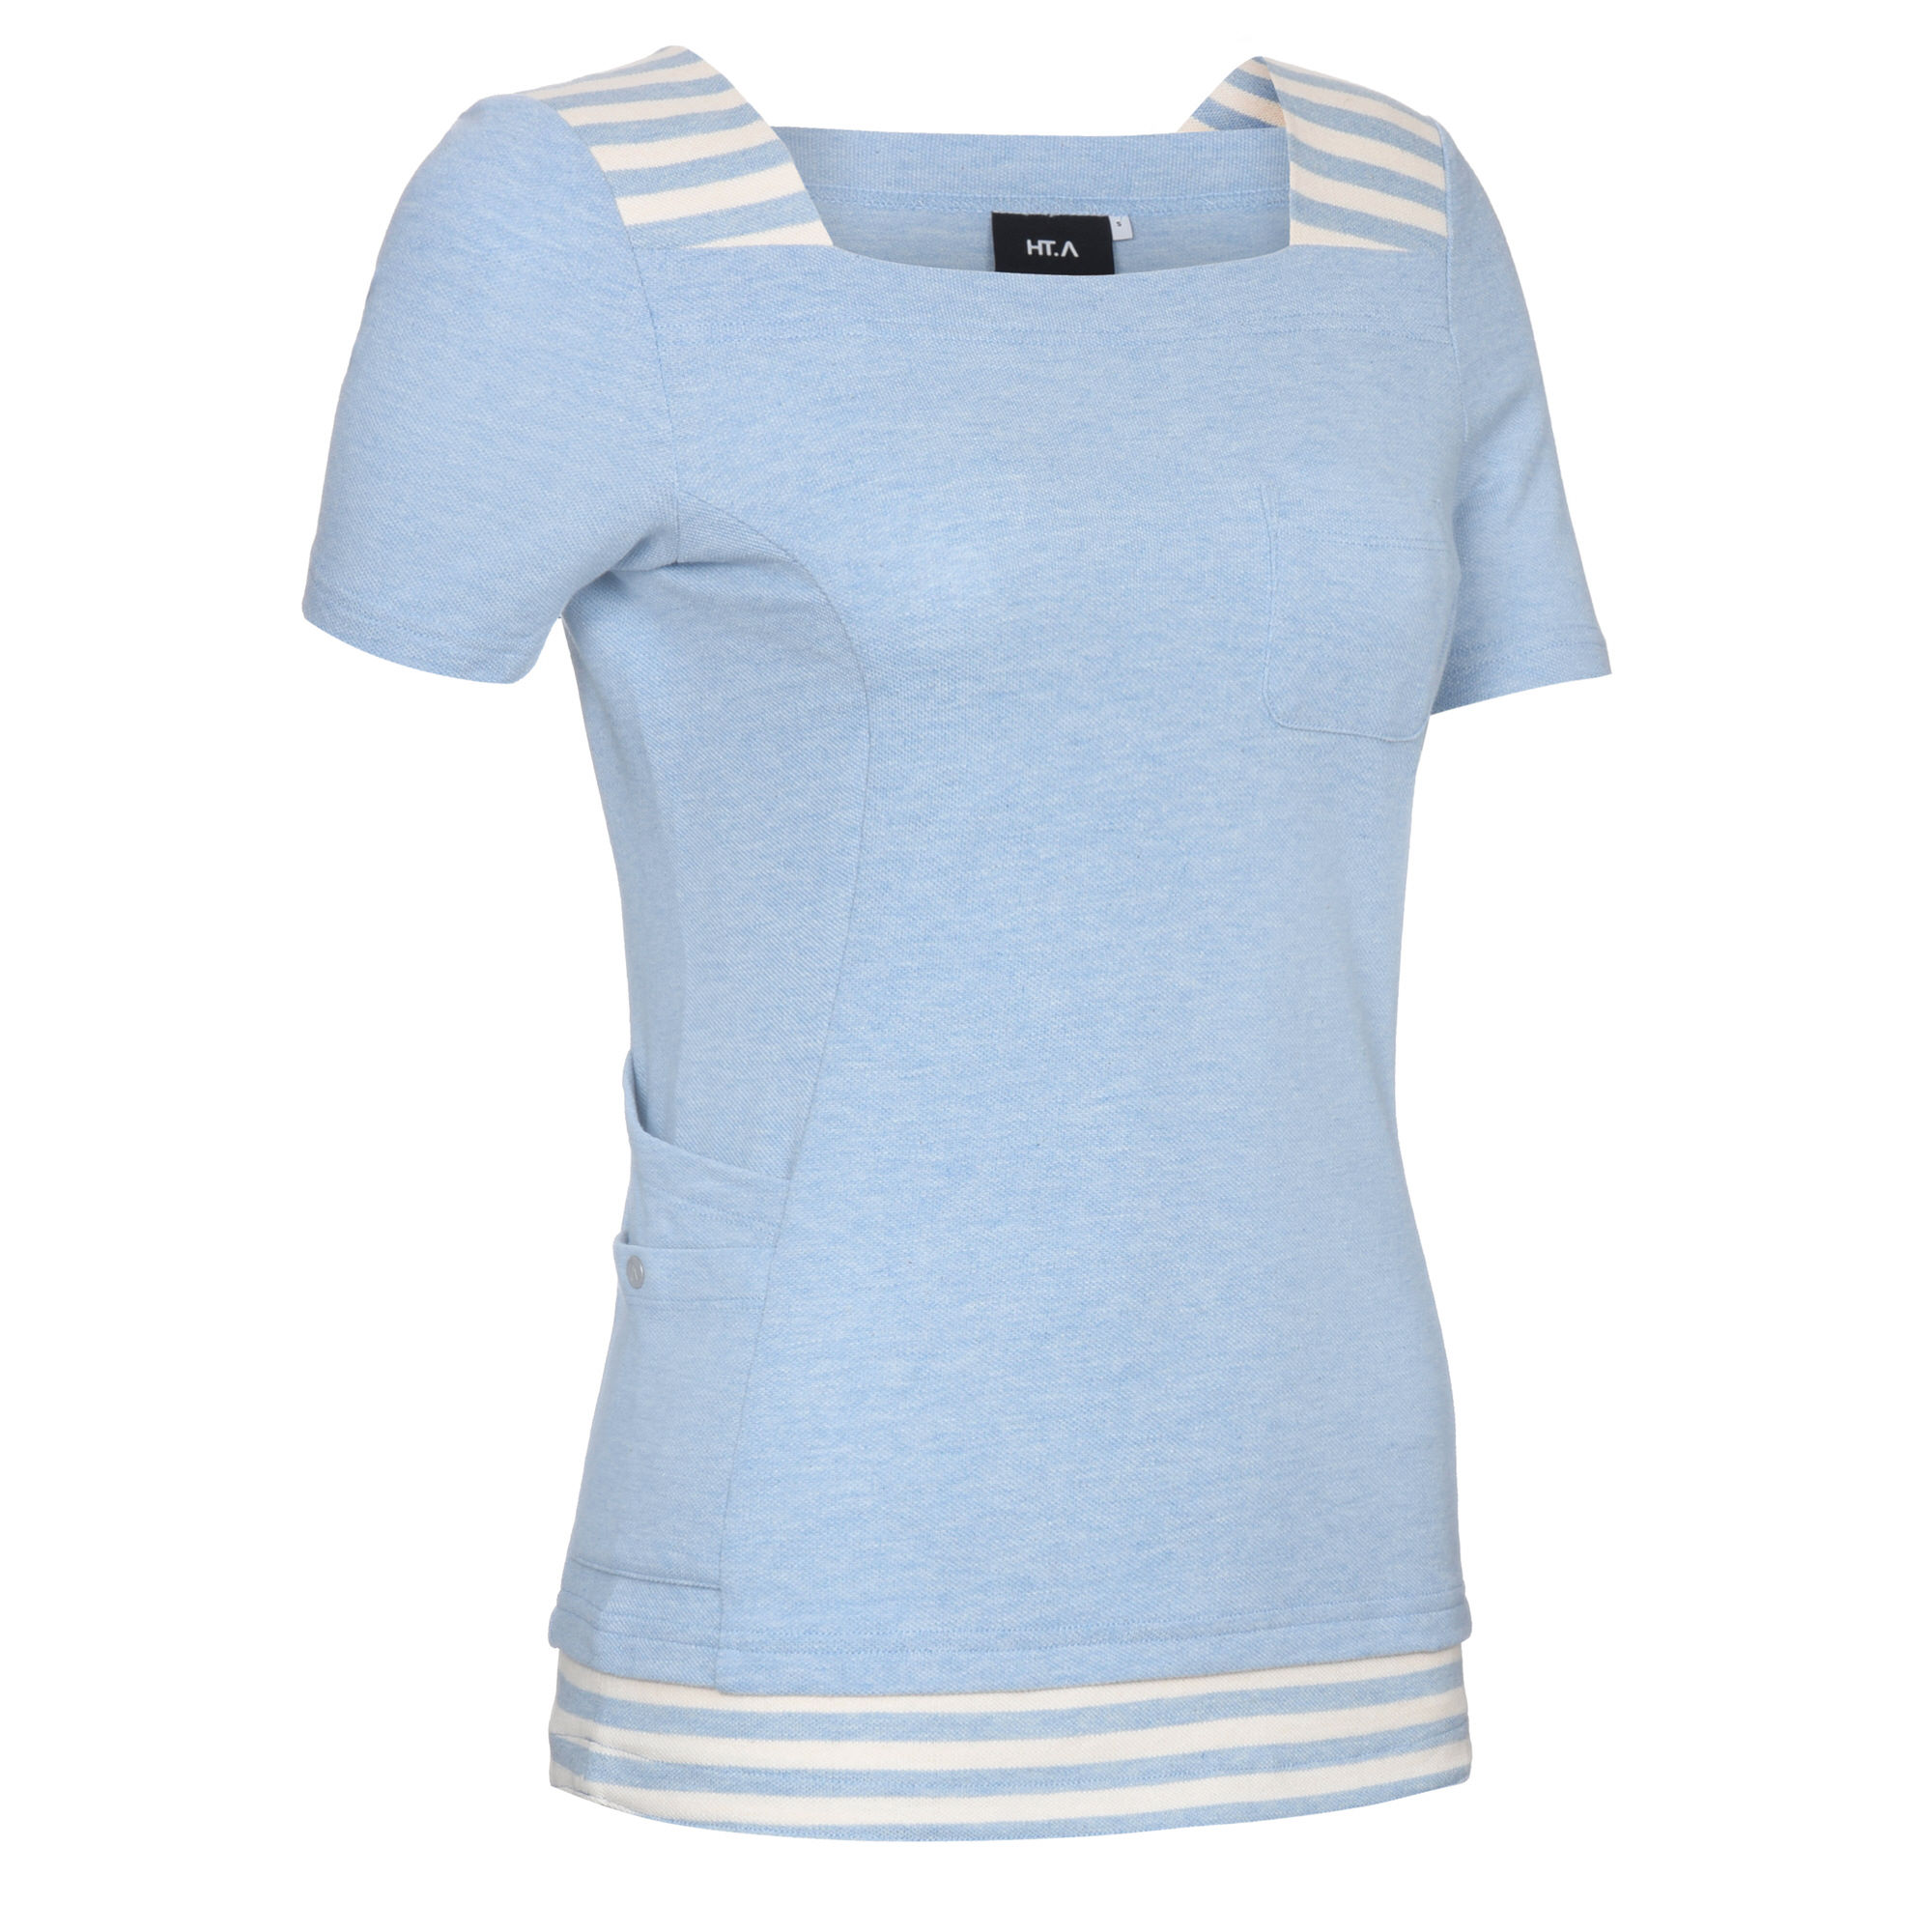 Wiggle primal women 39 s ht a pearl boat neck shirt t shirts for Boat neck t shirt women s